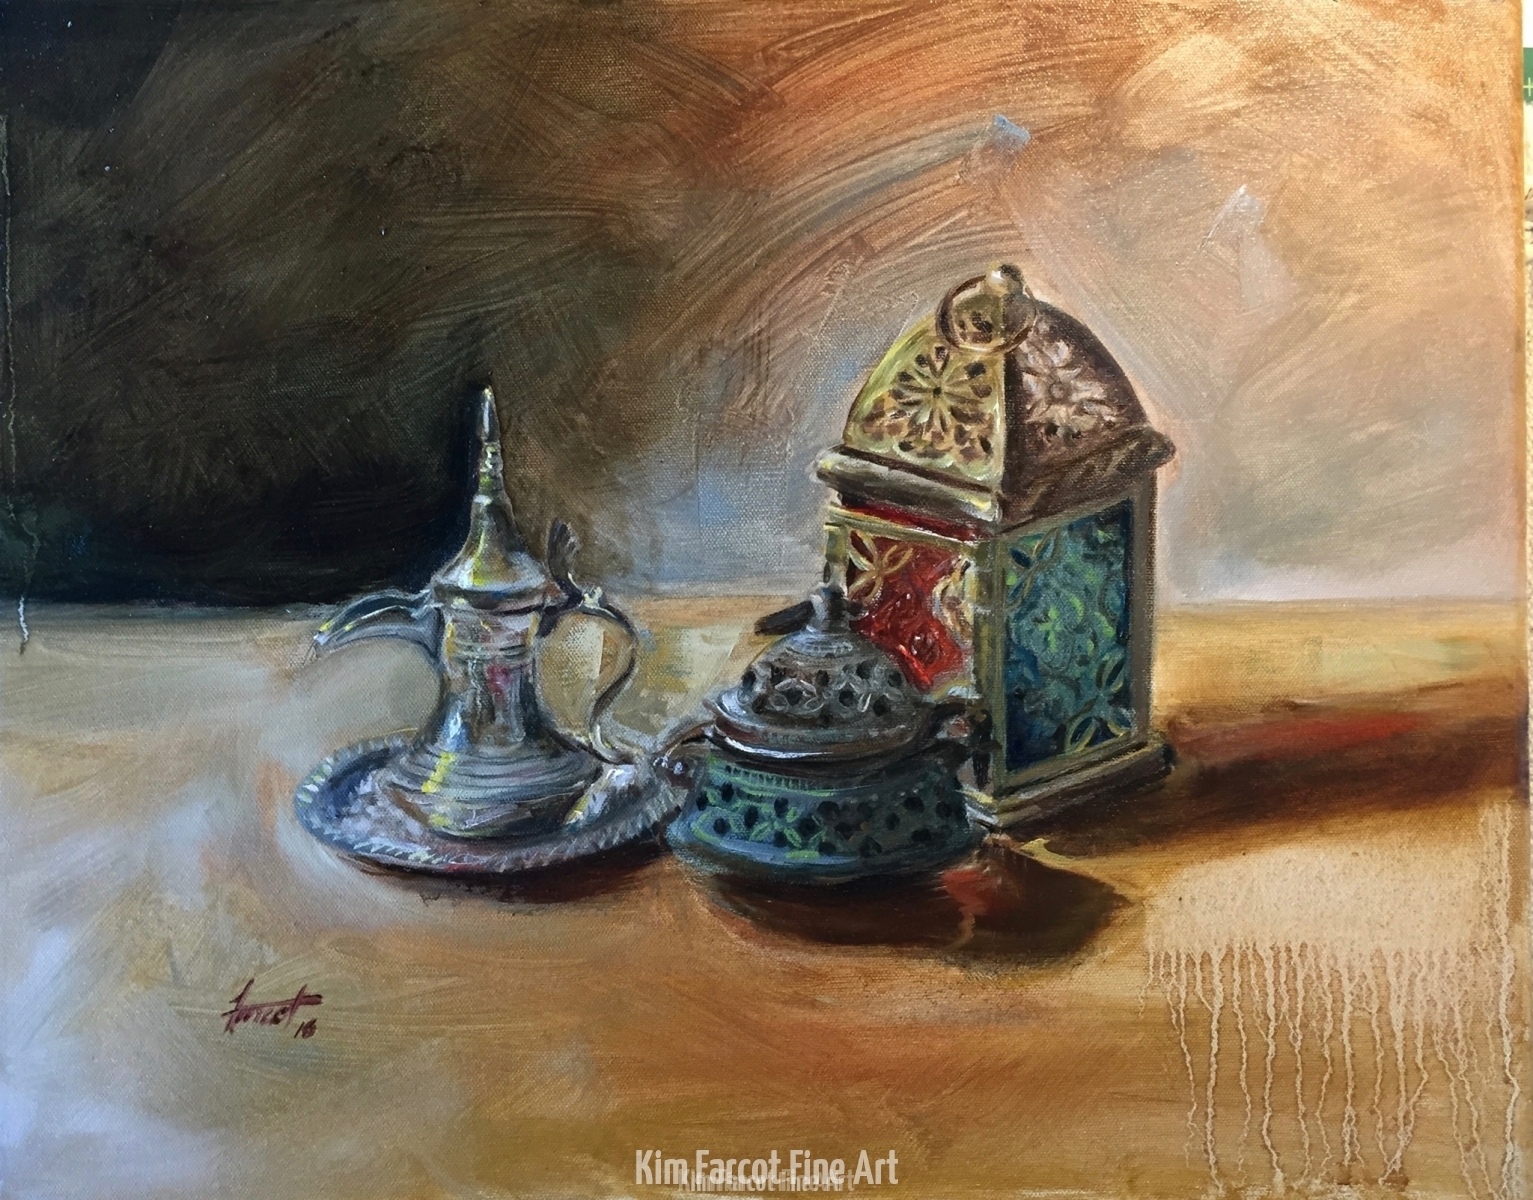 Saudi Still Life, private collection, Australia